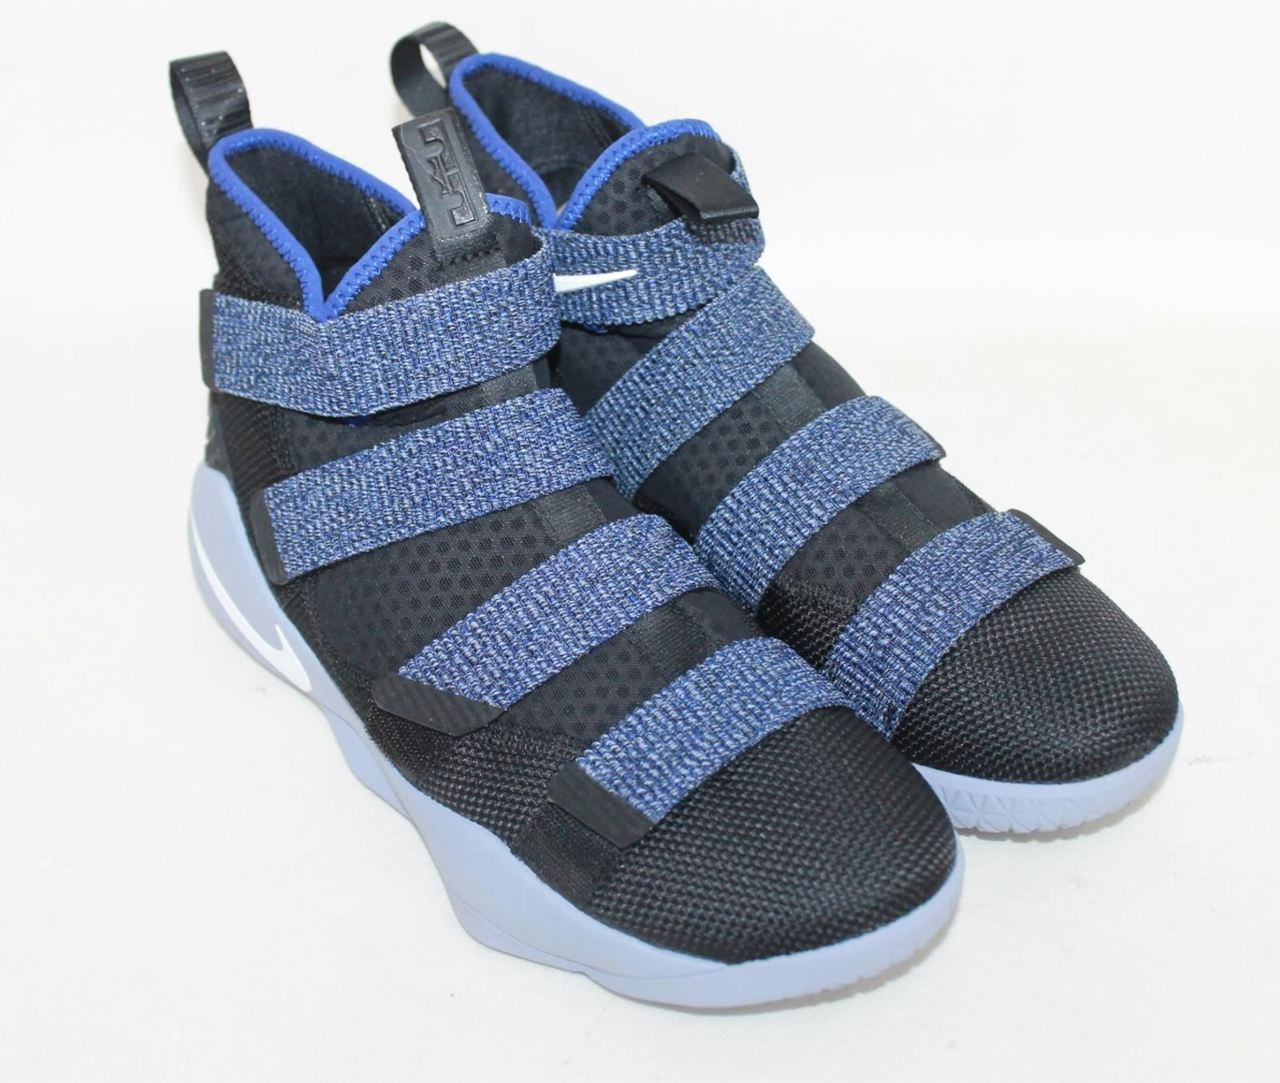 separation shoes 3ee32 0b6bc NEW NIKE Men's Zoom Lebron Soldier XI Basketball Shoes Boots Size UK9.5  EU44.5